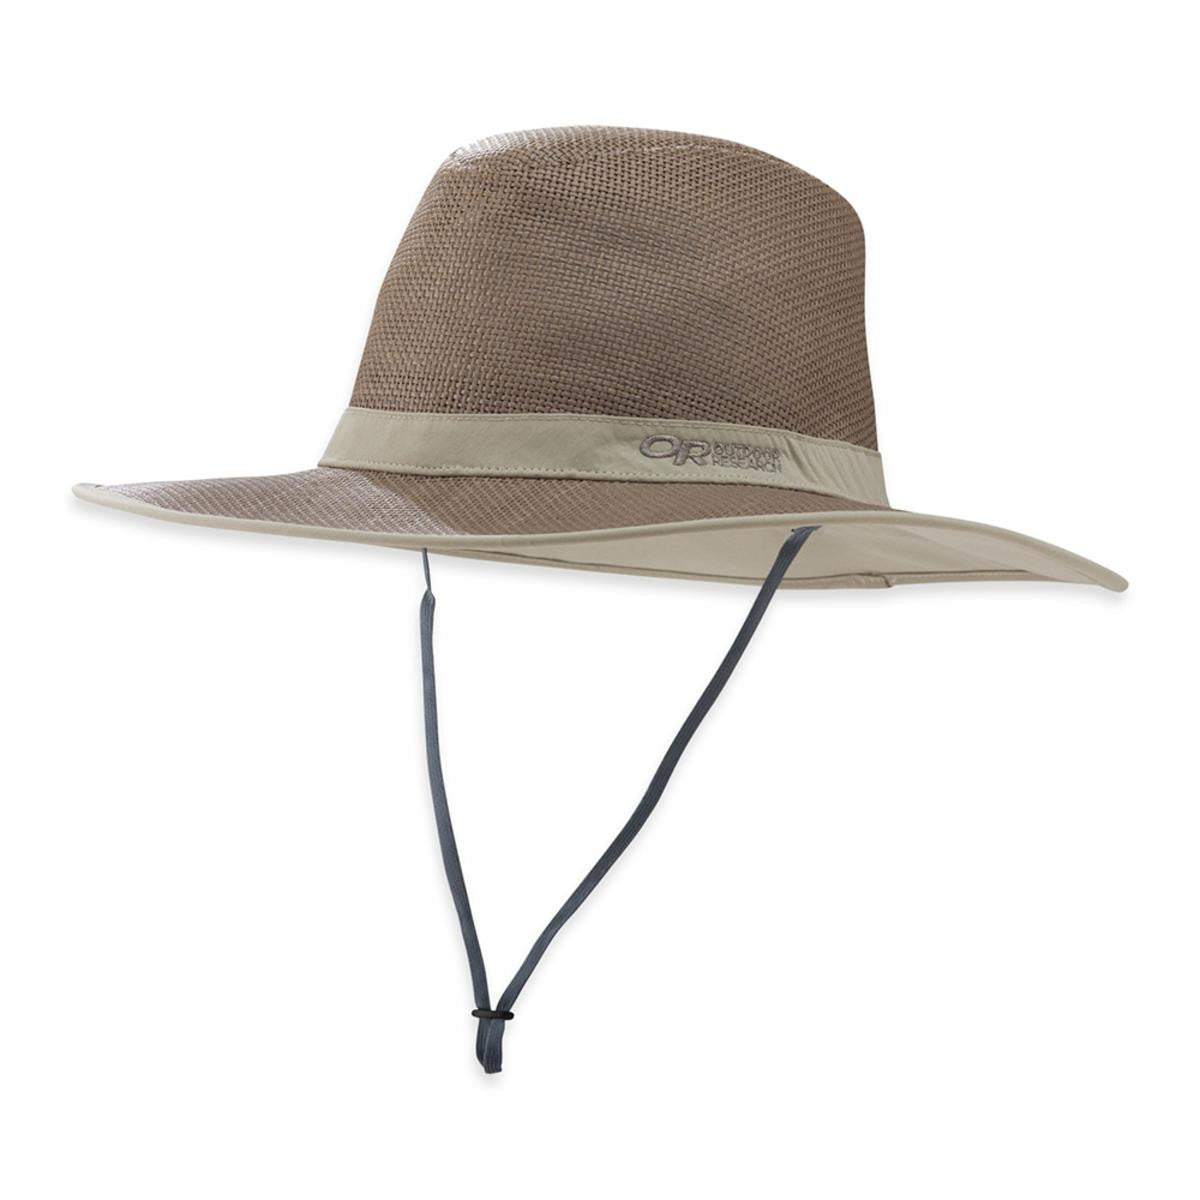 Outdoor Research Papyrus Brim Sun Hat